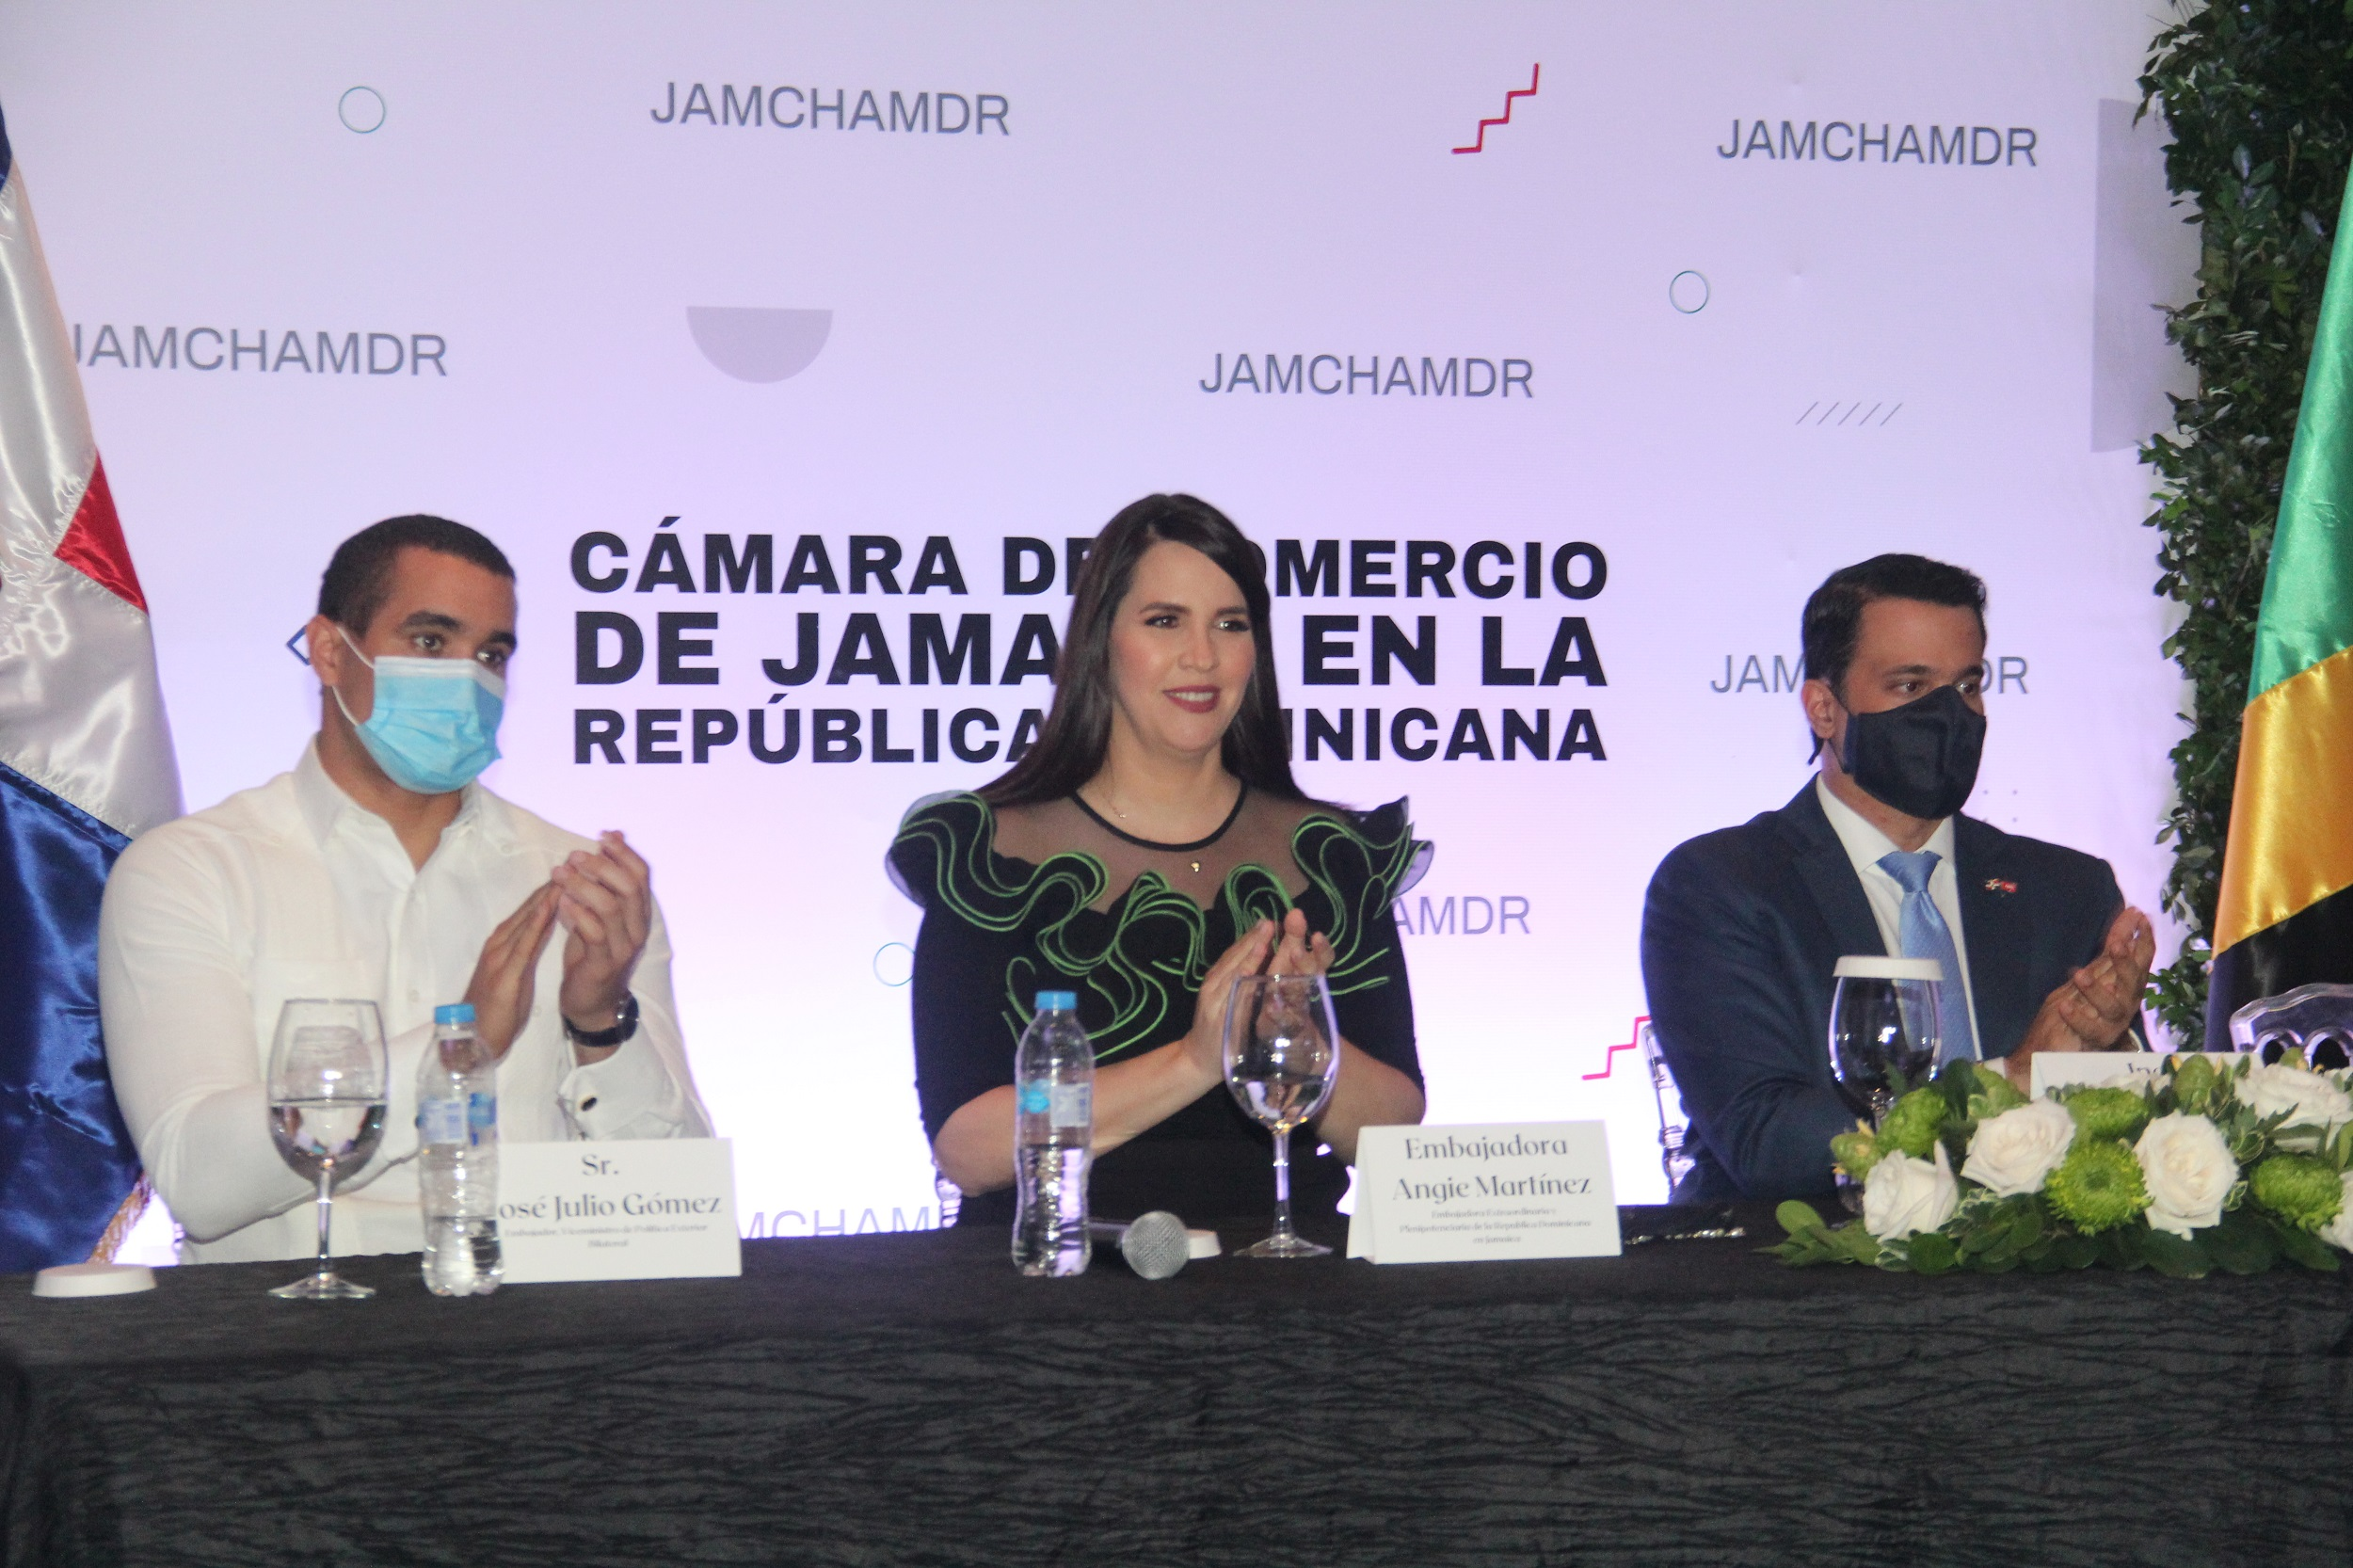 Jamaica Chamber of Commerce is launched in the Dominican Republic